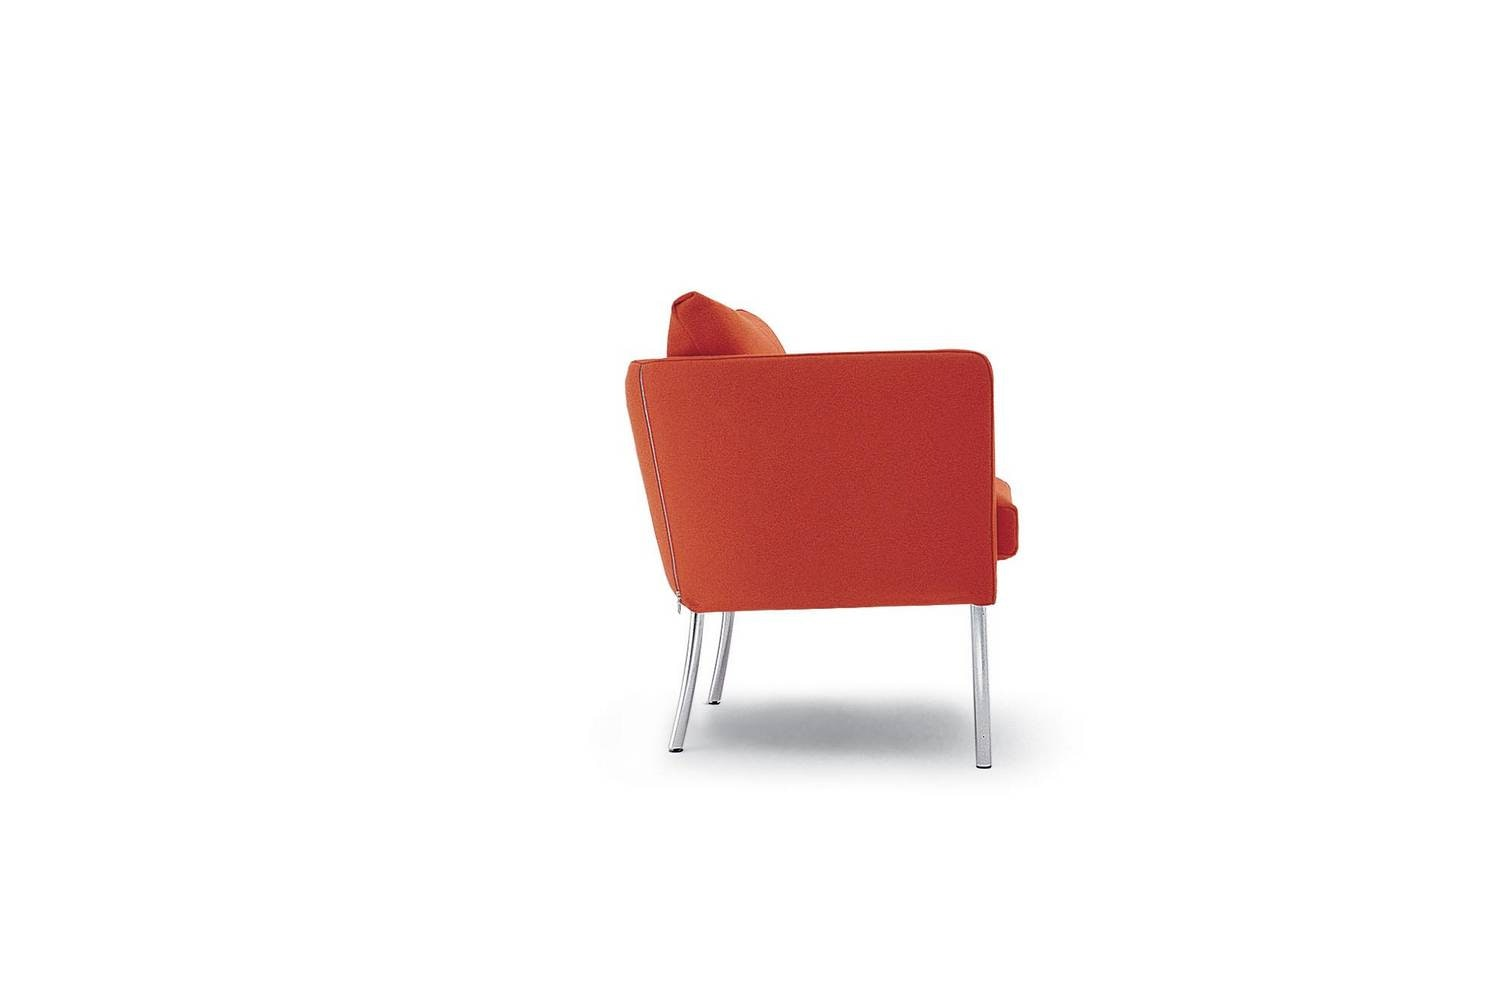 Cafe Armchair by Piero Lissoni for Living Divani